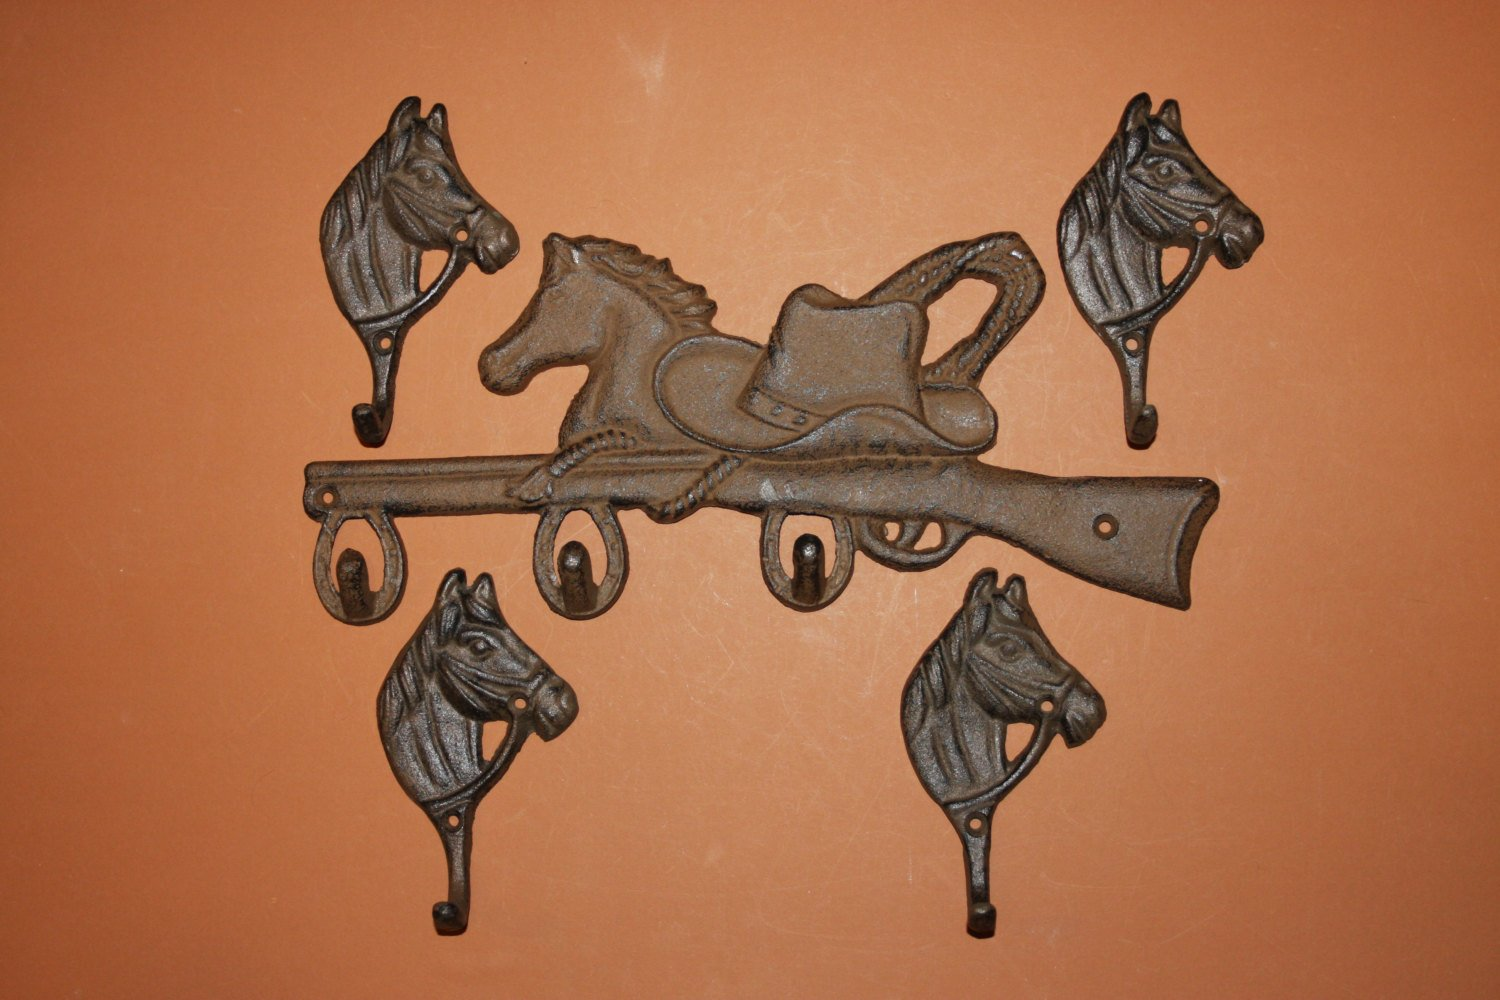 10) pcs, Cowboy bath decor, country western cowboy bathroom towel hooks, horse towel hooks, cast iron,  Free Shipping, W-12,18